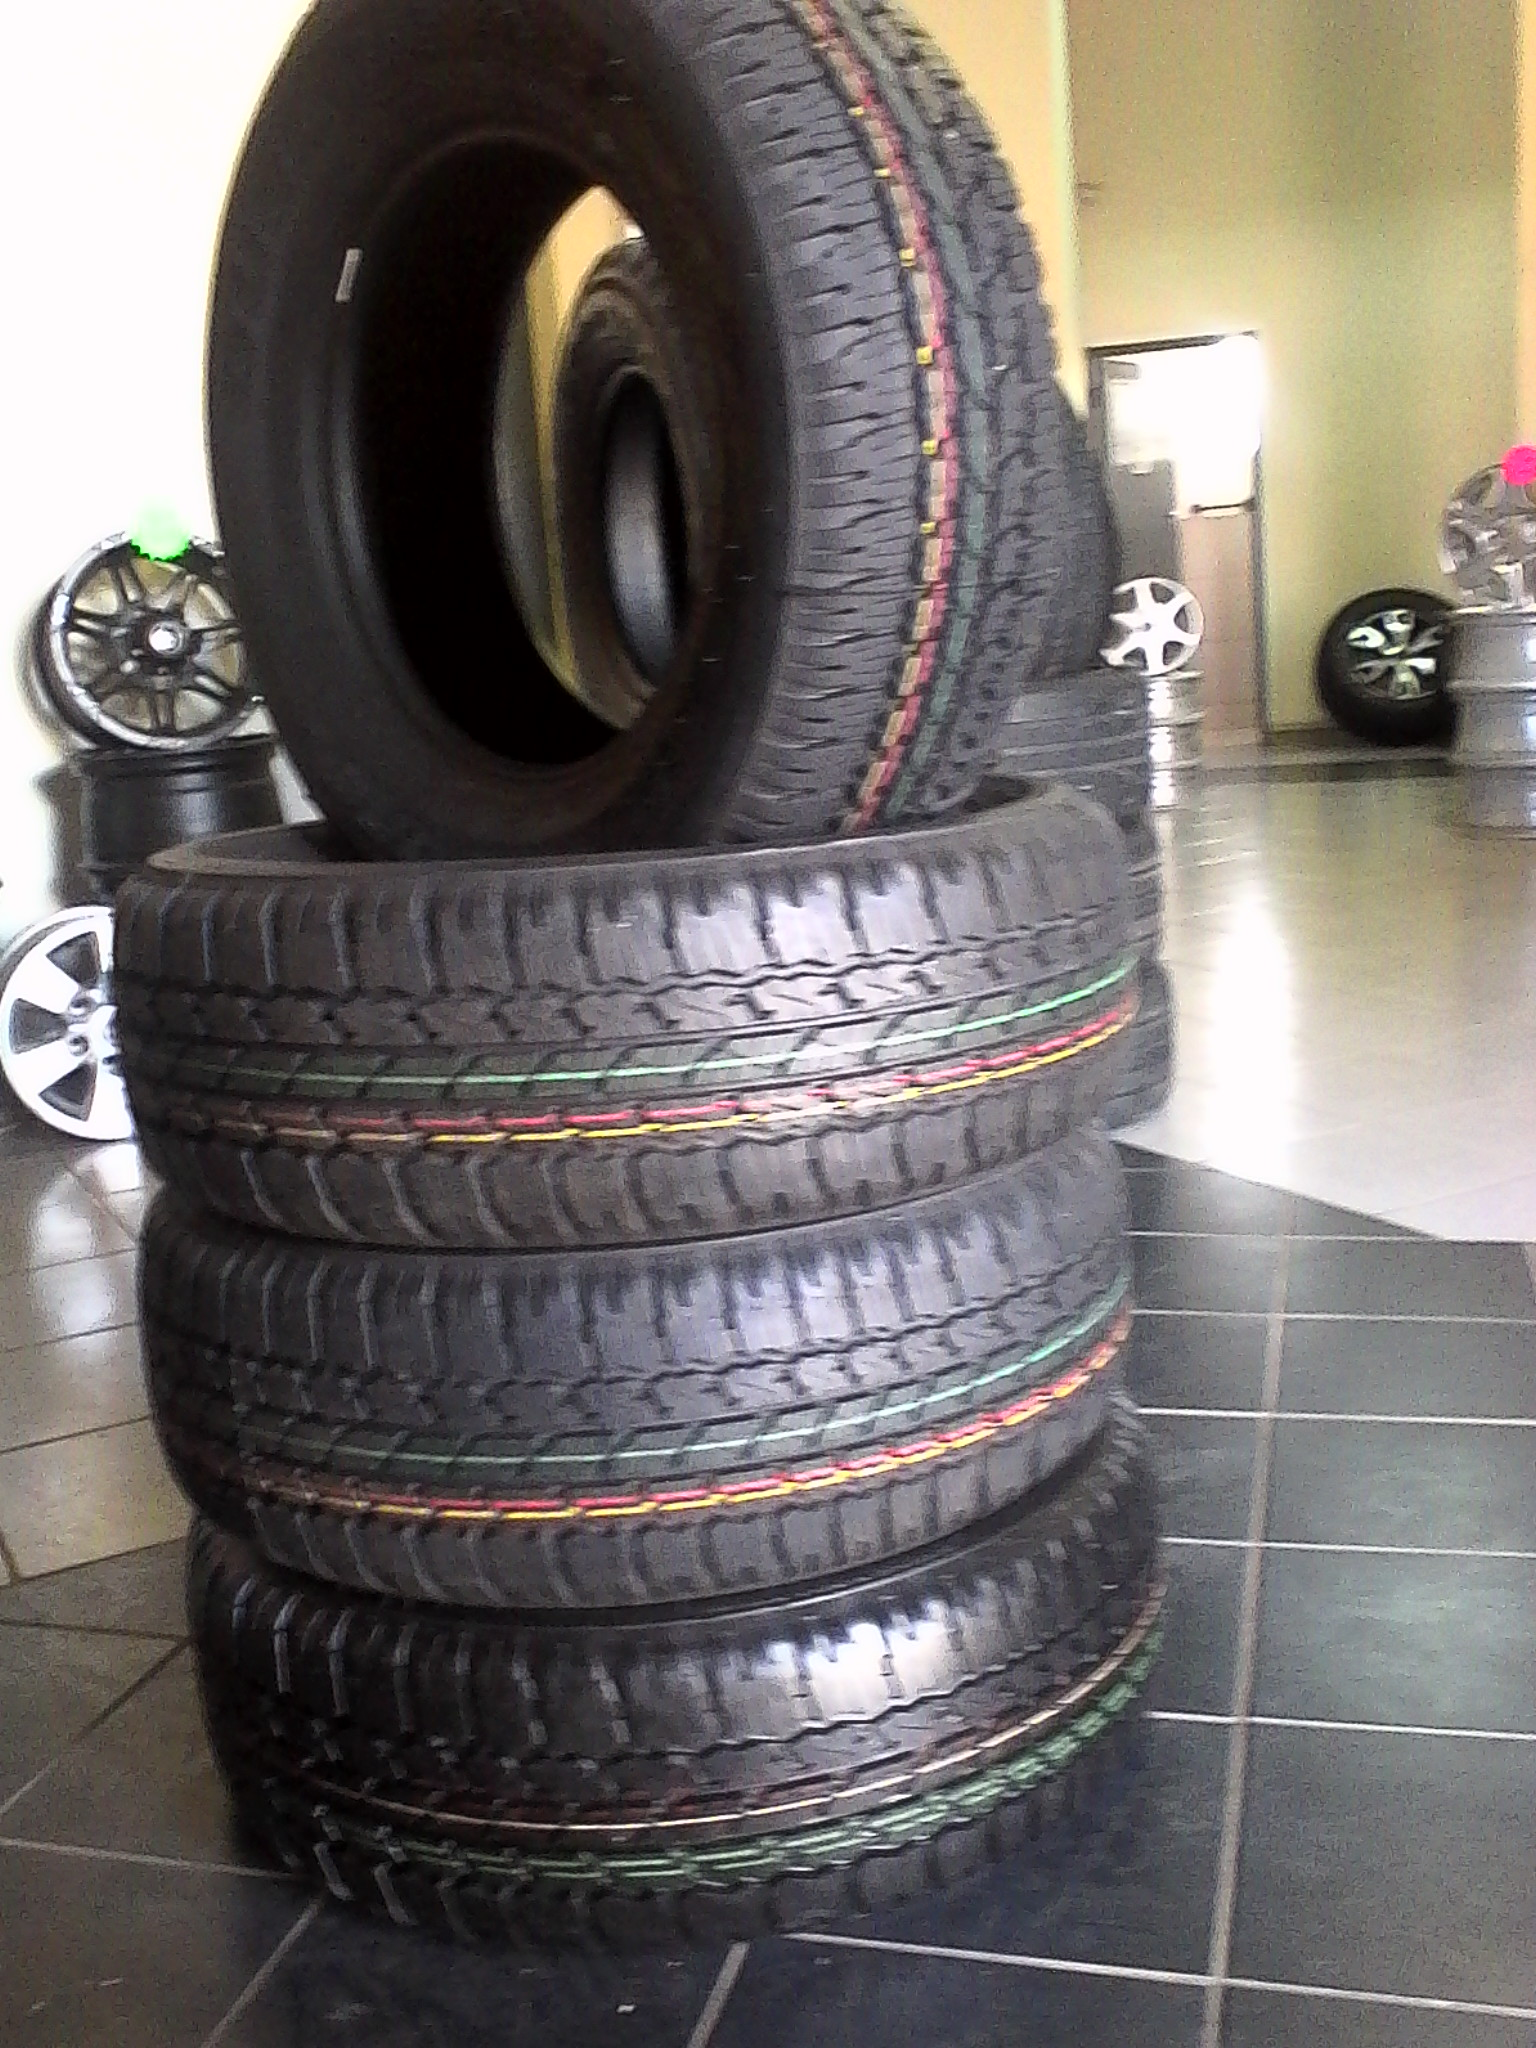 New commercial tyres for your trailer taxi and bakkie 155/r12c r650, 155/r13c r650,  185/r14c r890,  195/r14c r860, 195/r15c r950,  215/r15c r1199